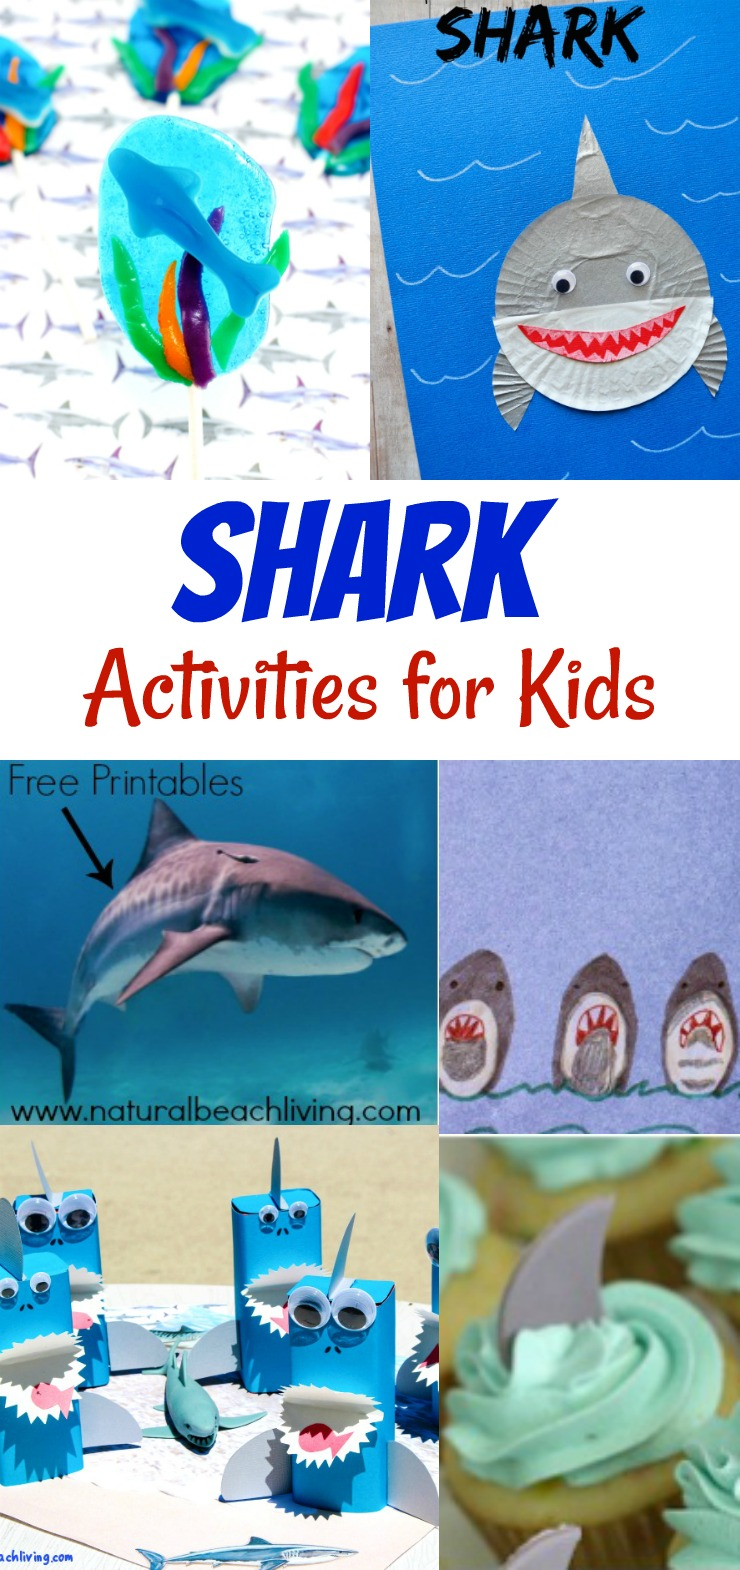 Amazing Shark Activities for Kids (Free Printables)